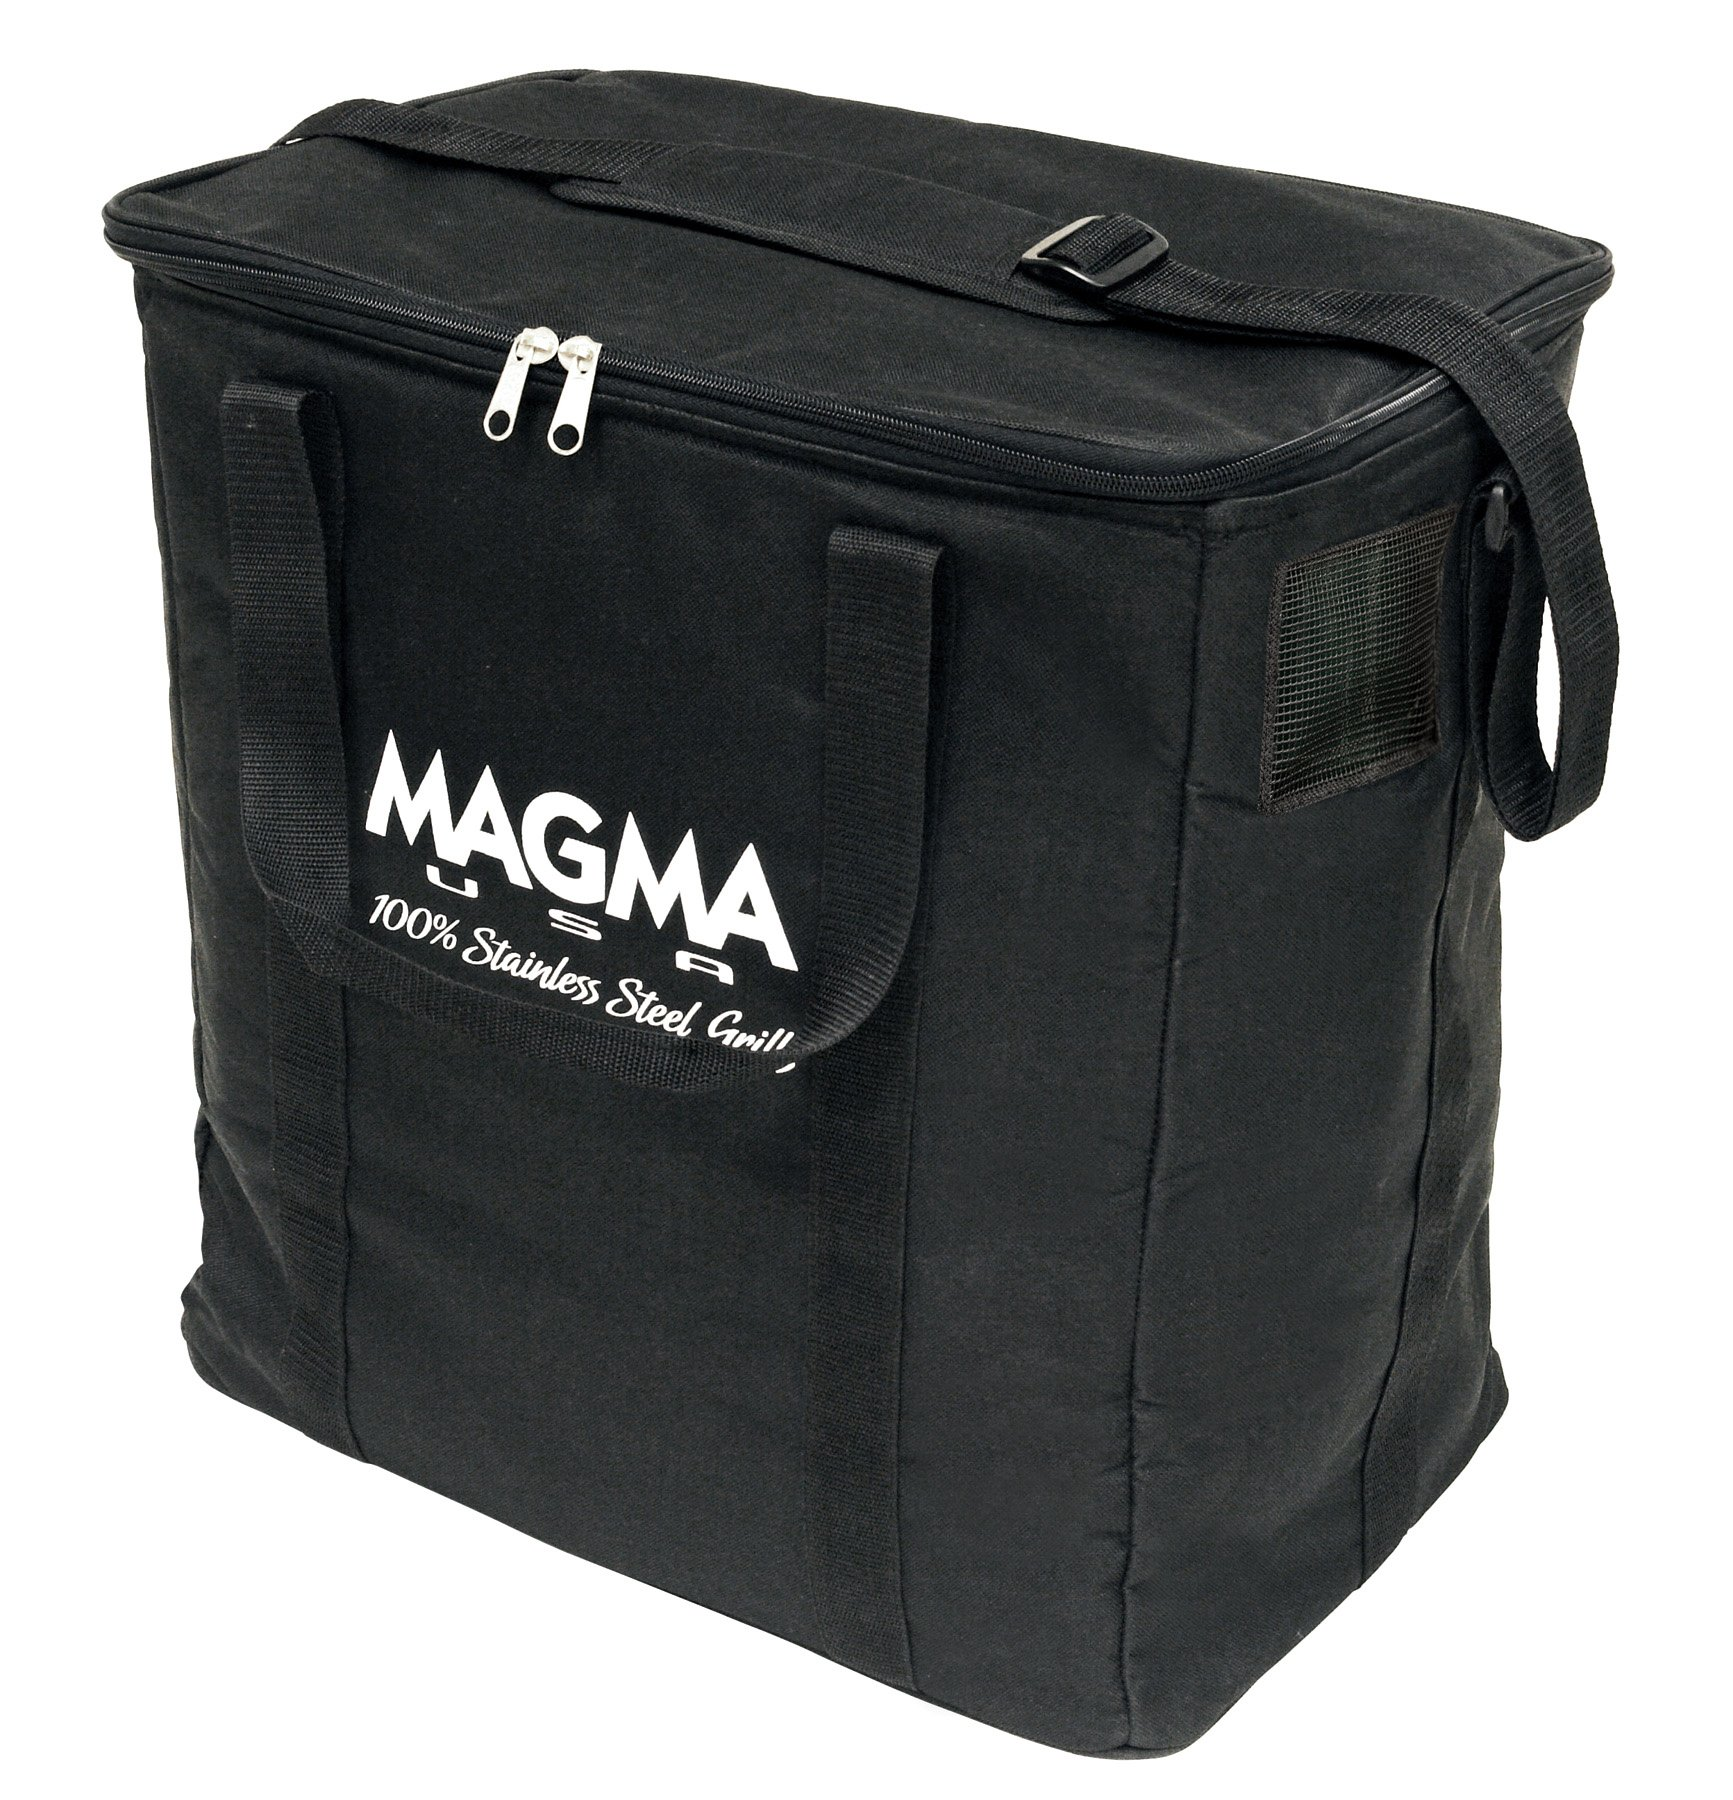 Magma Products Marine Kettle Grill Carrying/Storage Case (Black)